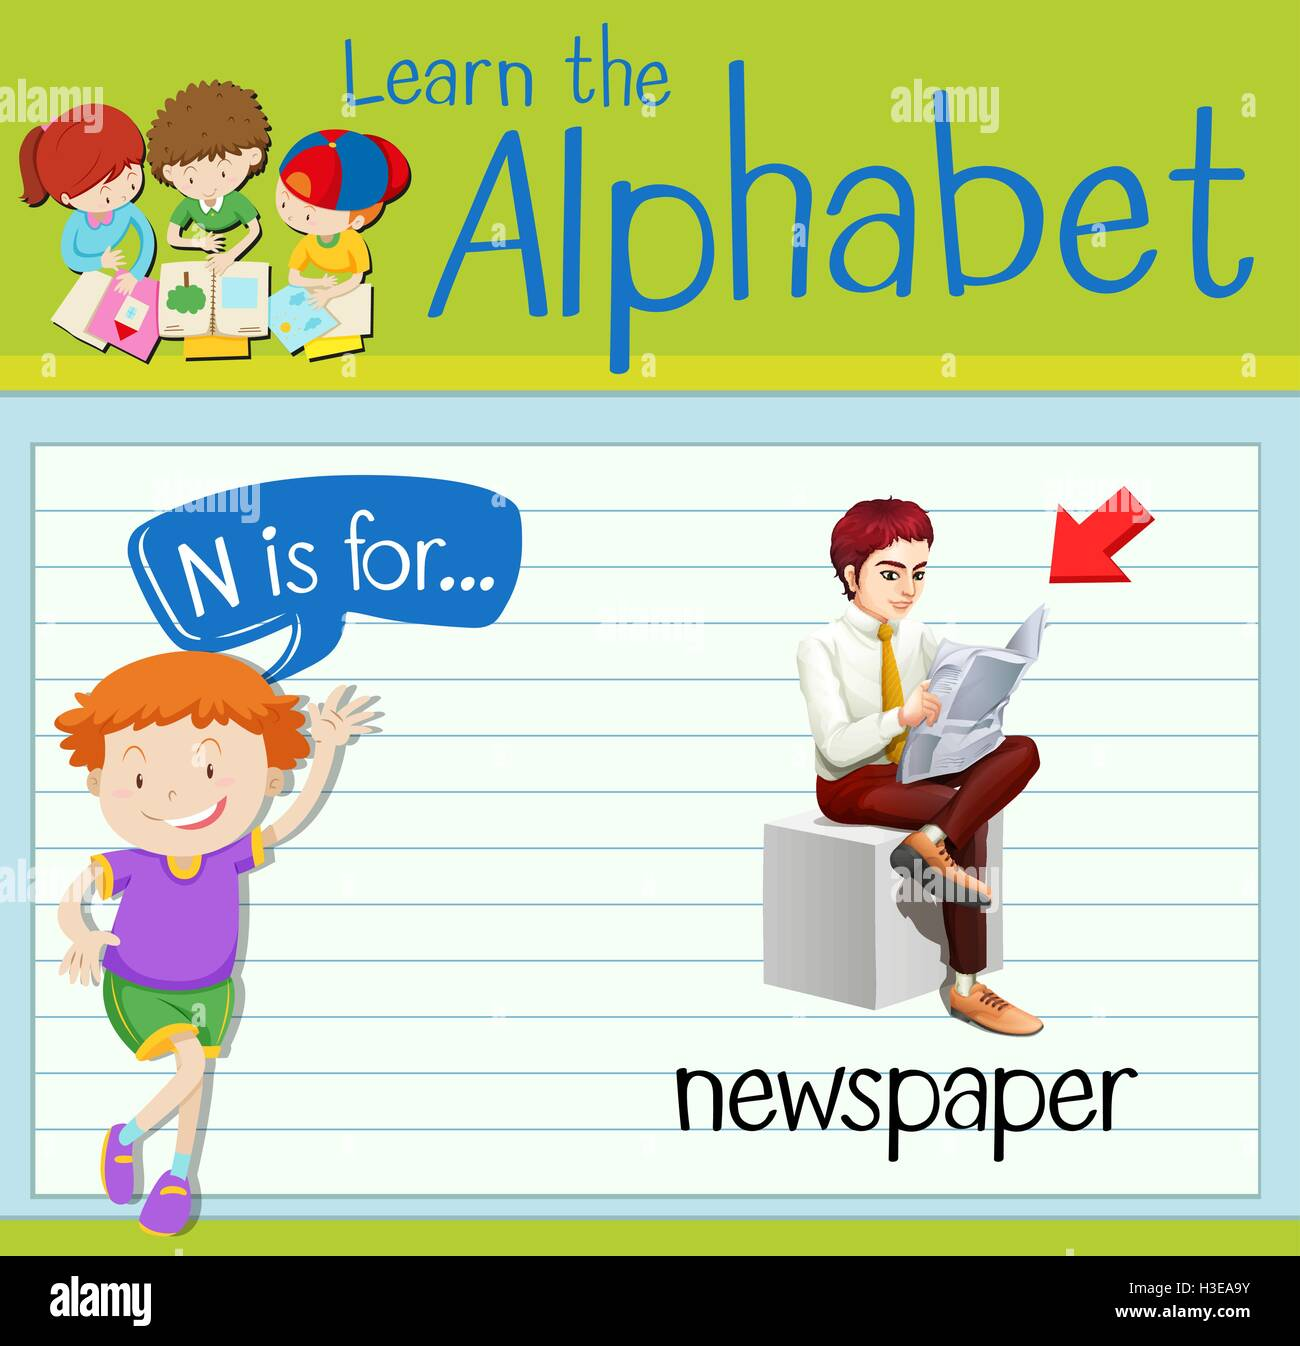 Flashcard letter N is for newspaper illustration - Stock Image